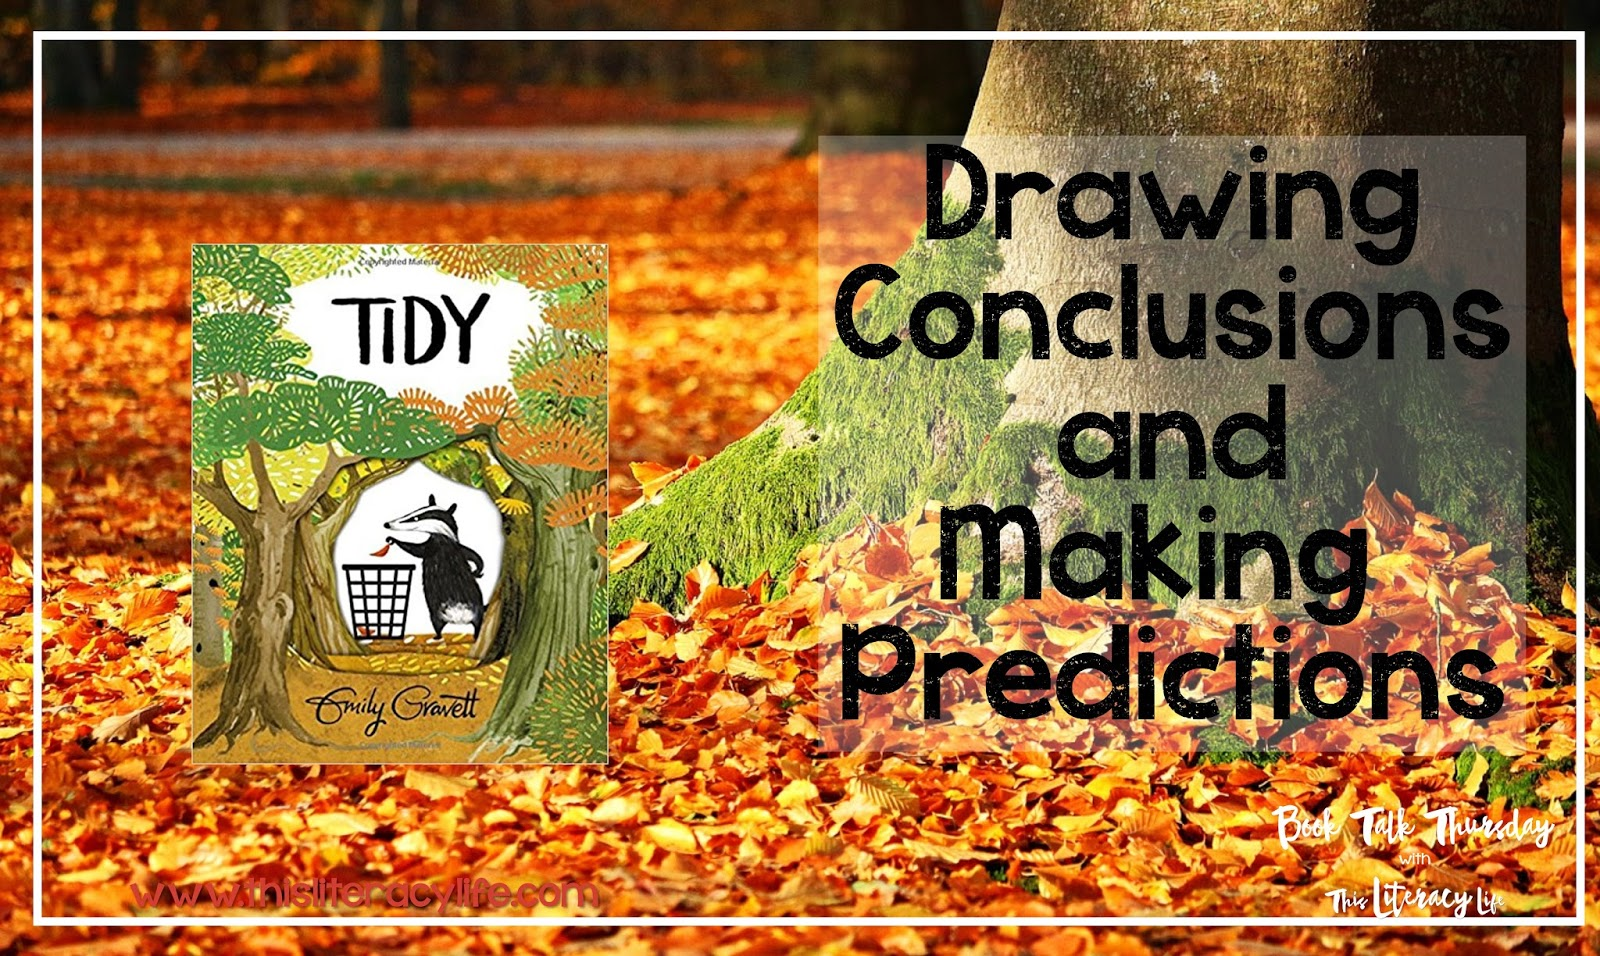 Drawing conclusions isn't always easy, but Tidy is a great book for helping children understand this important concept.